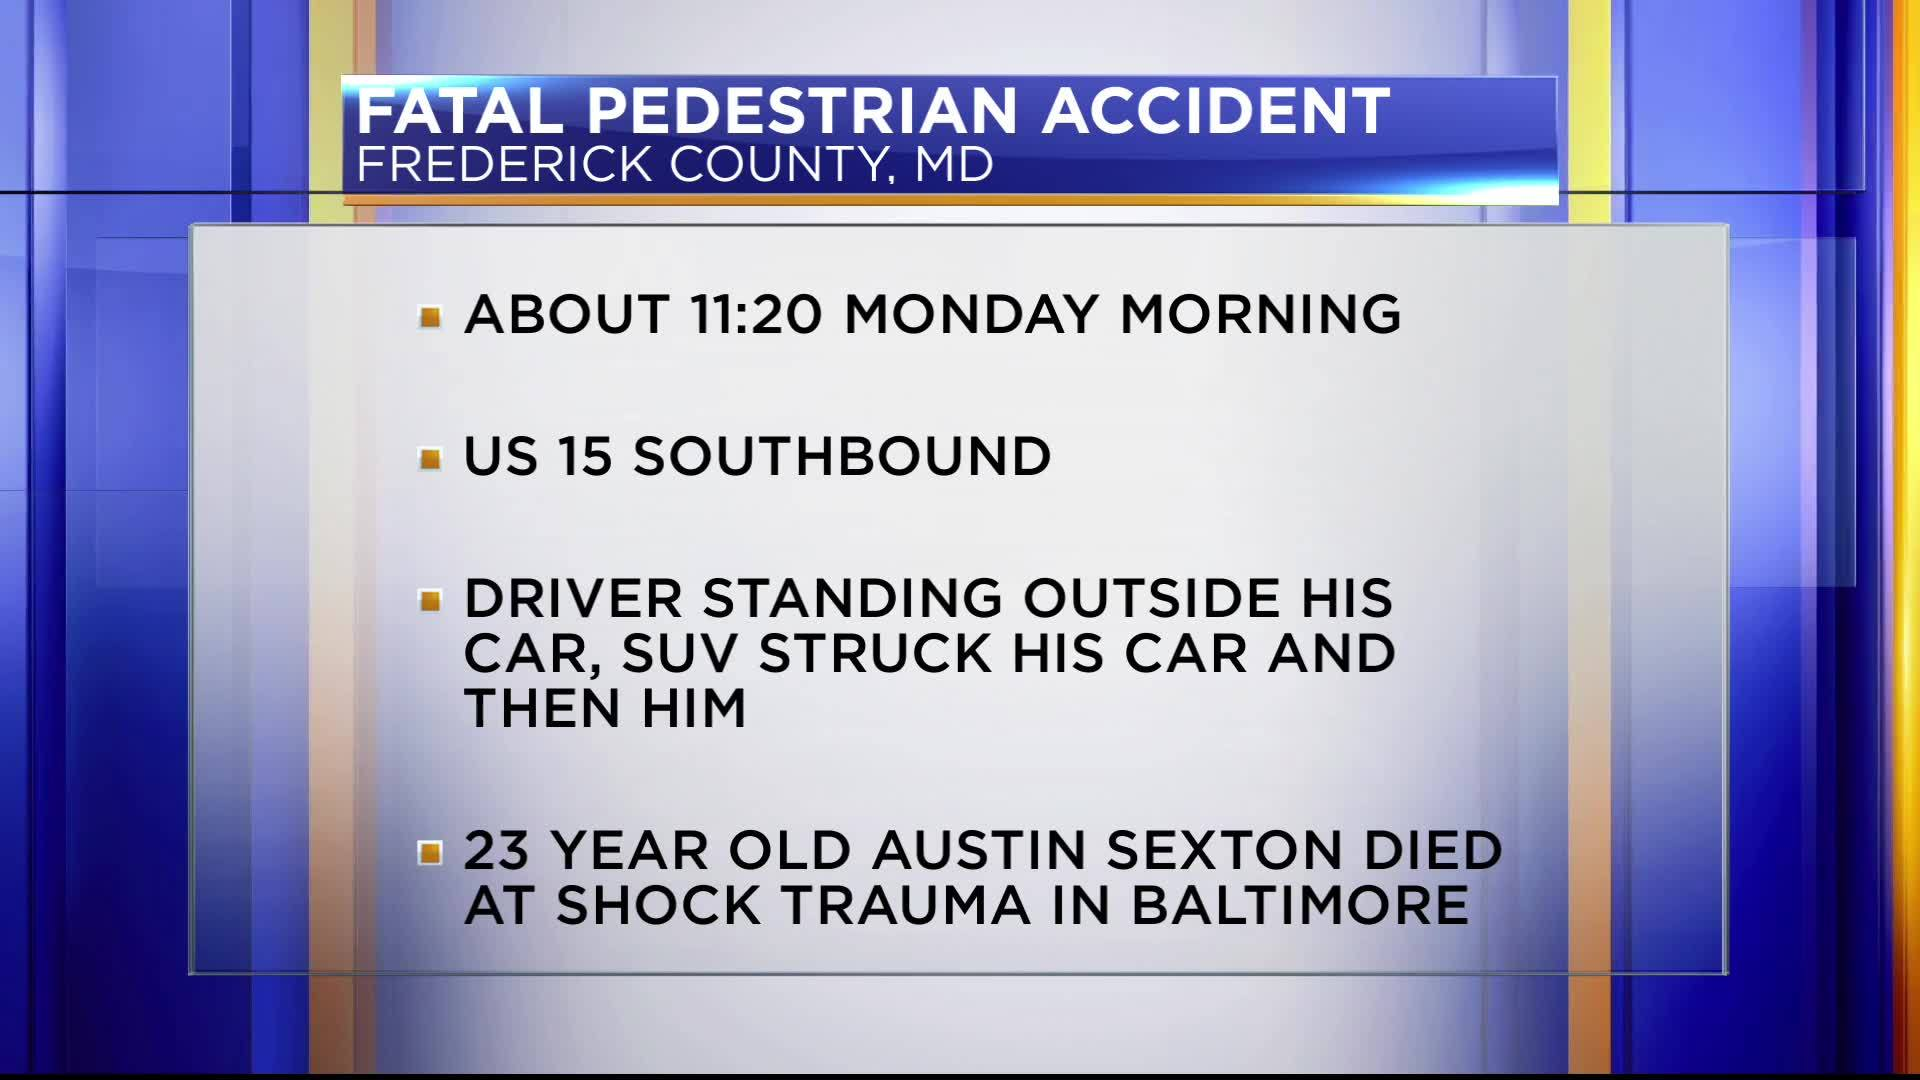 Fatal pedestrian accident in Frederick County, MD